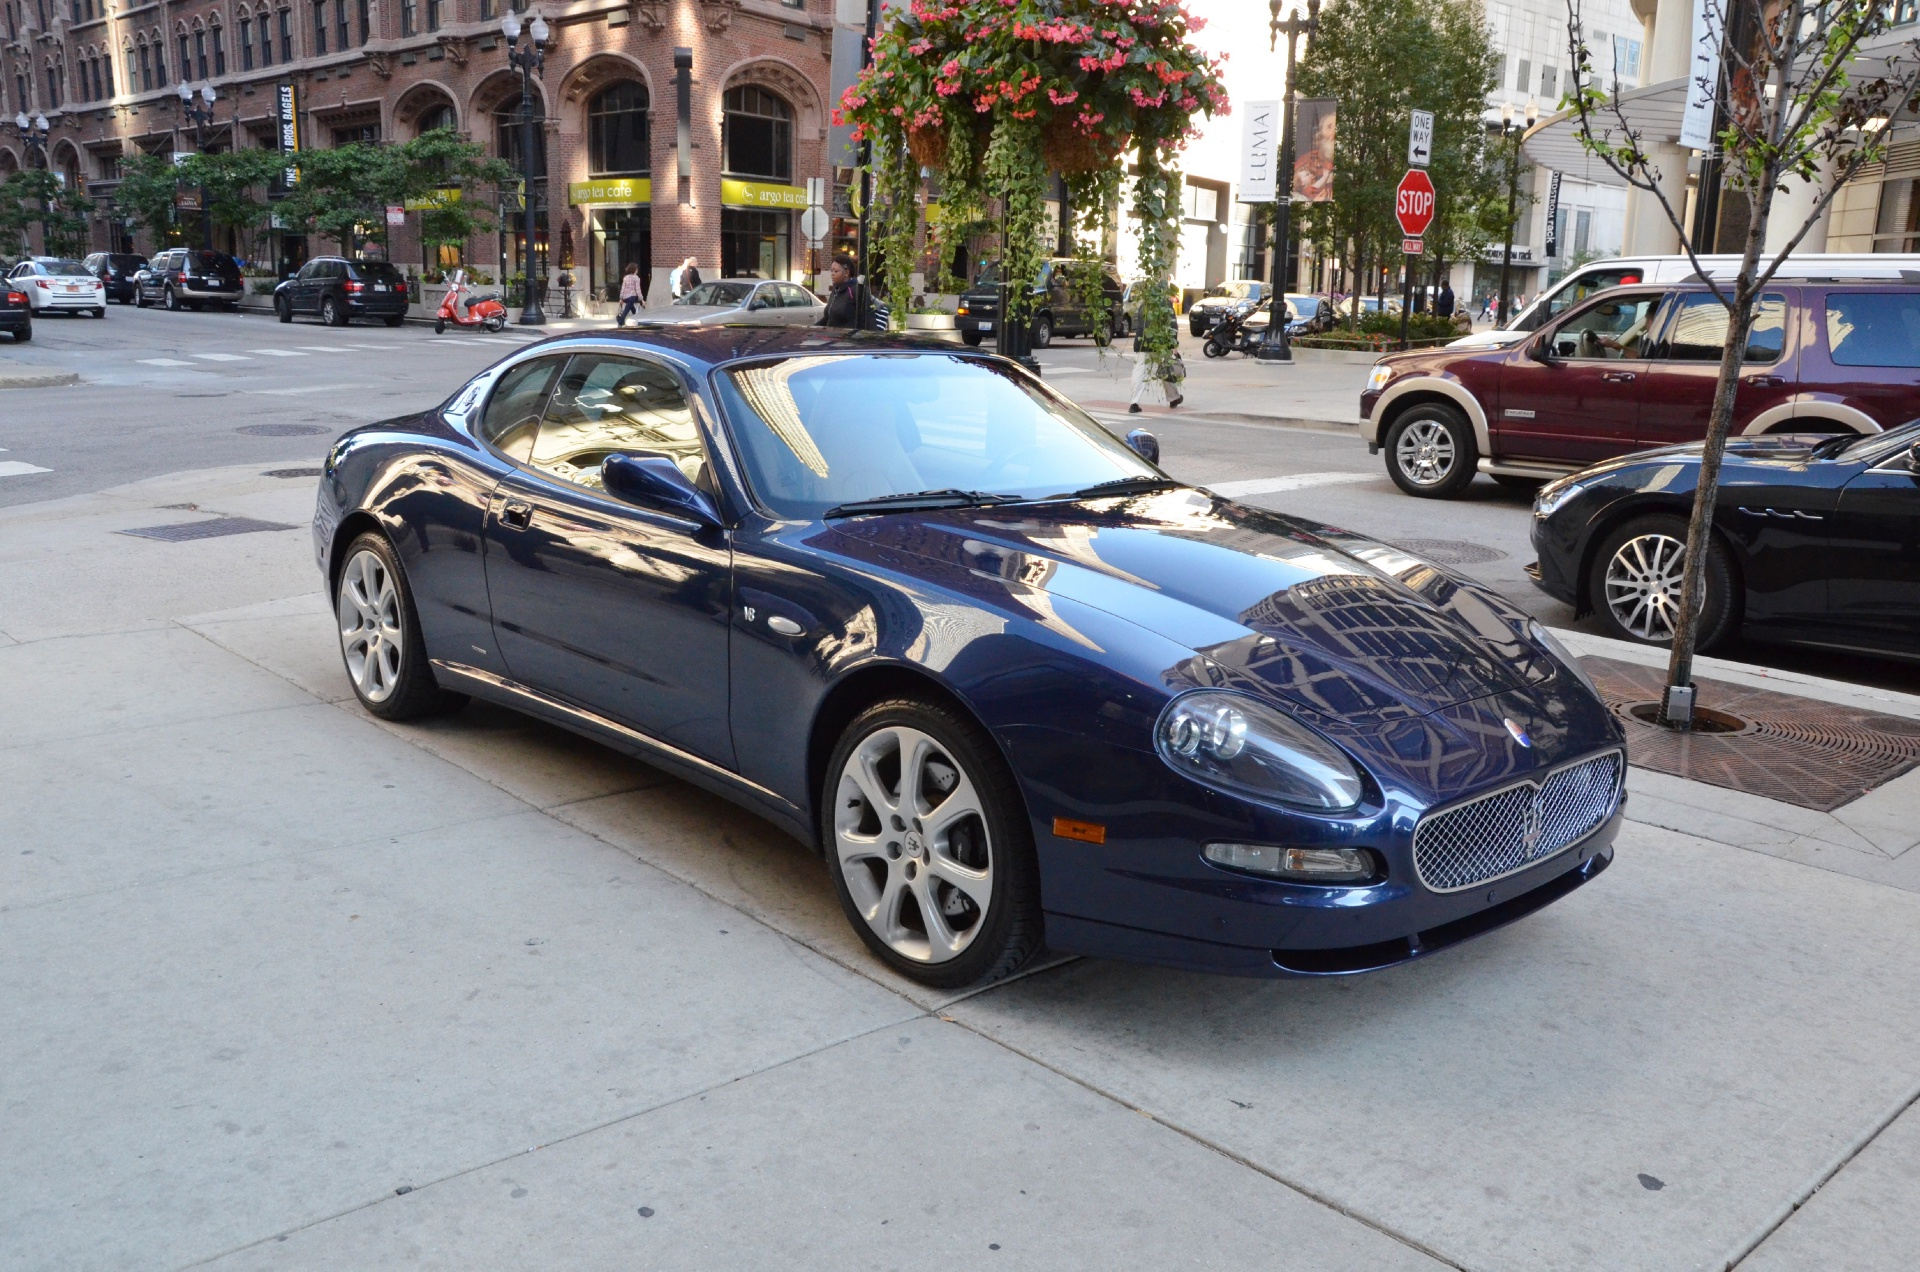 2005 maserati coupe coupe choice image diagram writing for Air force decoration writing guide